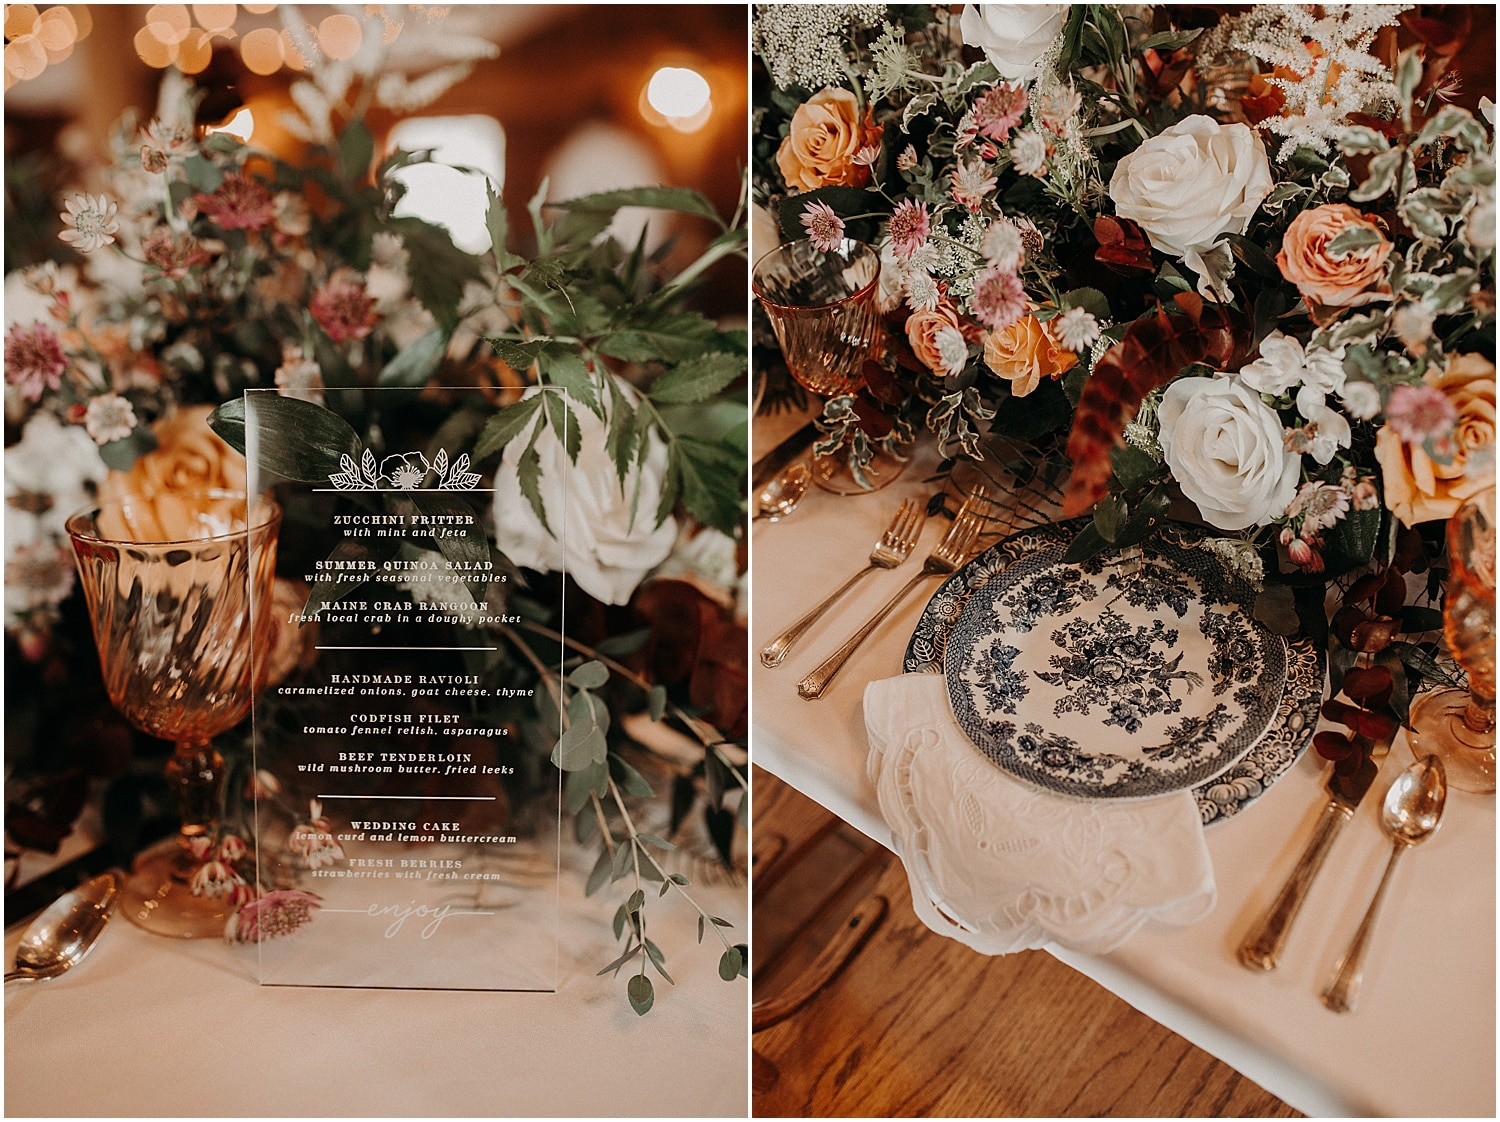 Menu printed on glass and antique china wedding inspiration